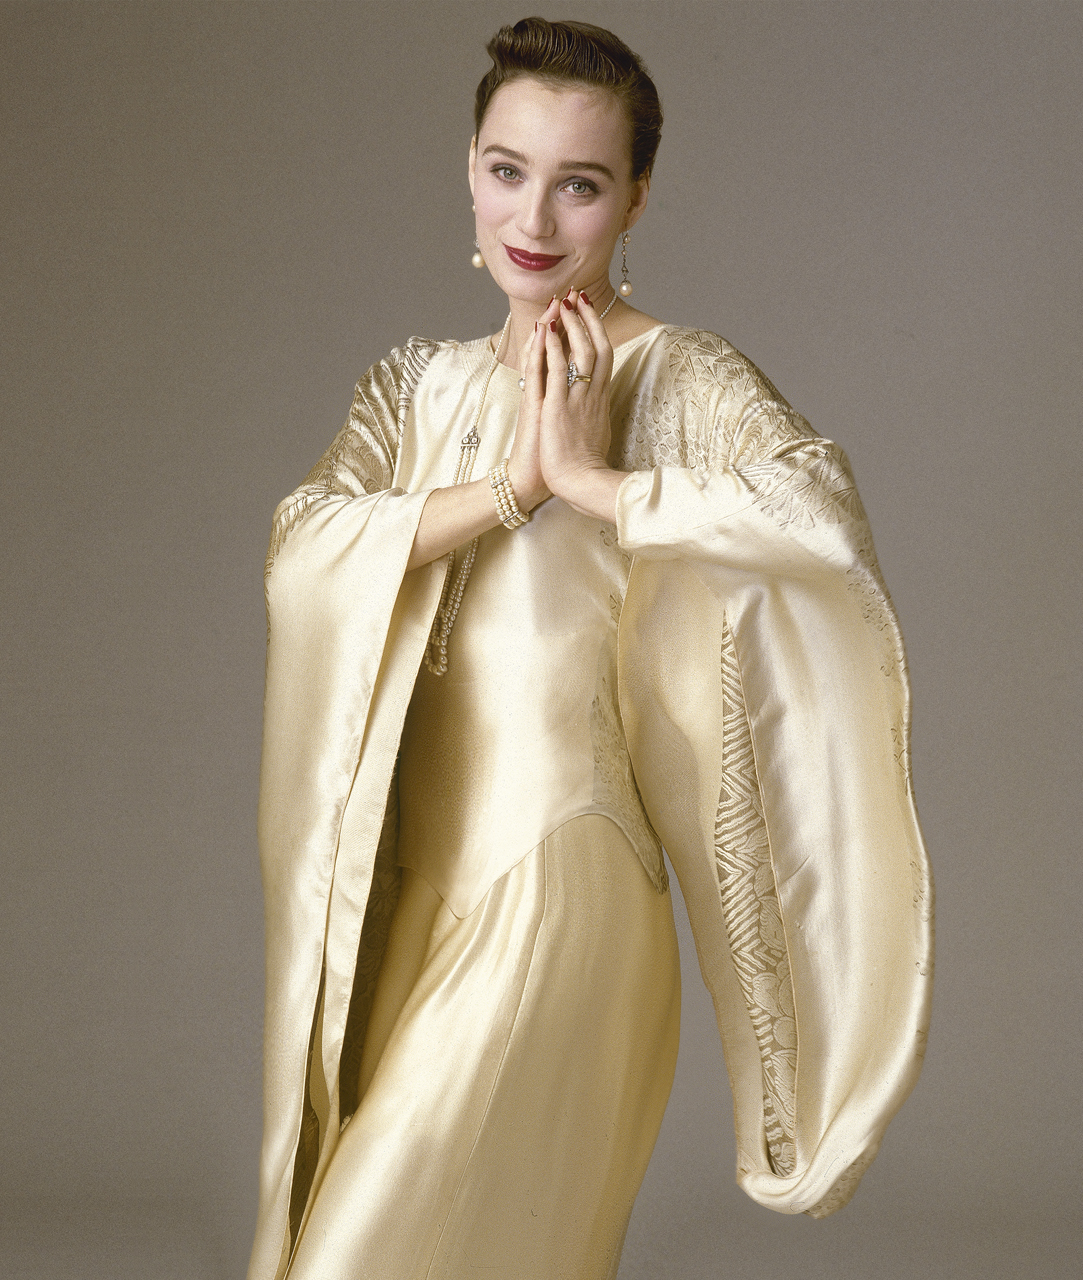 Kristen-Scott-Thomas.Gold-Satin-Dress.Arrowsmith